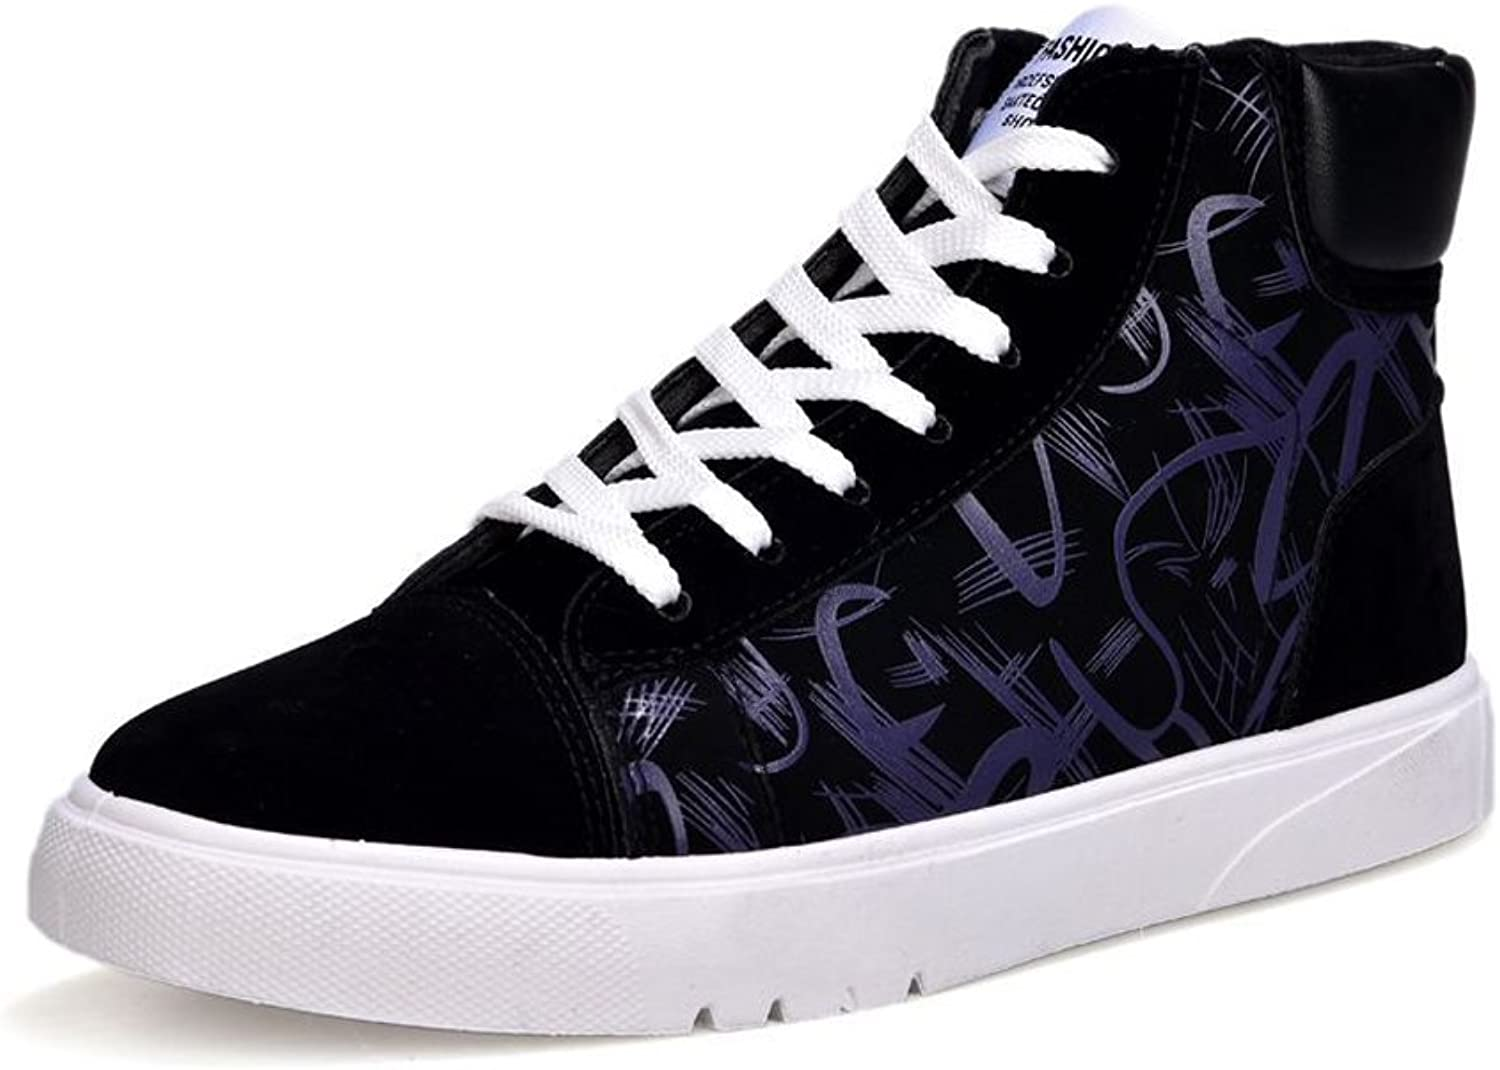 MUMUWU Men's Flat shoes PU Patent Leather Abstract Painting Upper Lace Up High Top Sneaker carrier